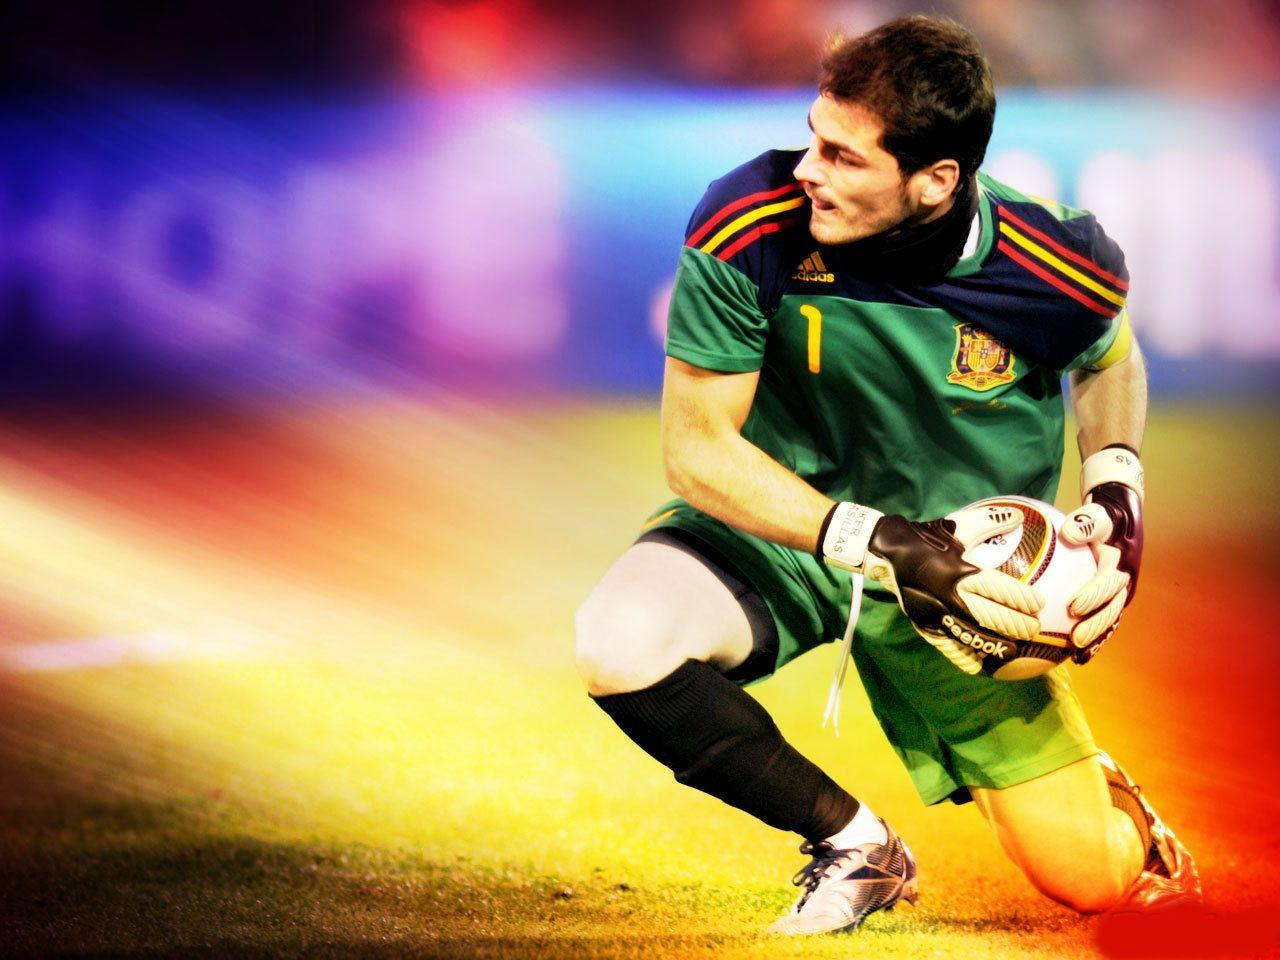 Iker Casillas Latest Hd Wallpapers 2013 | All Football Players HD ...